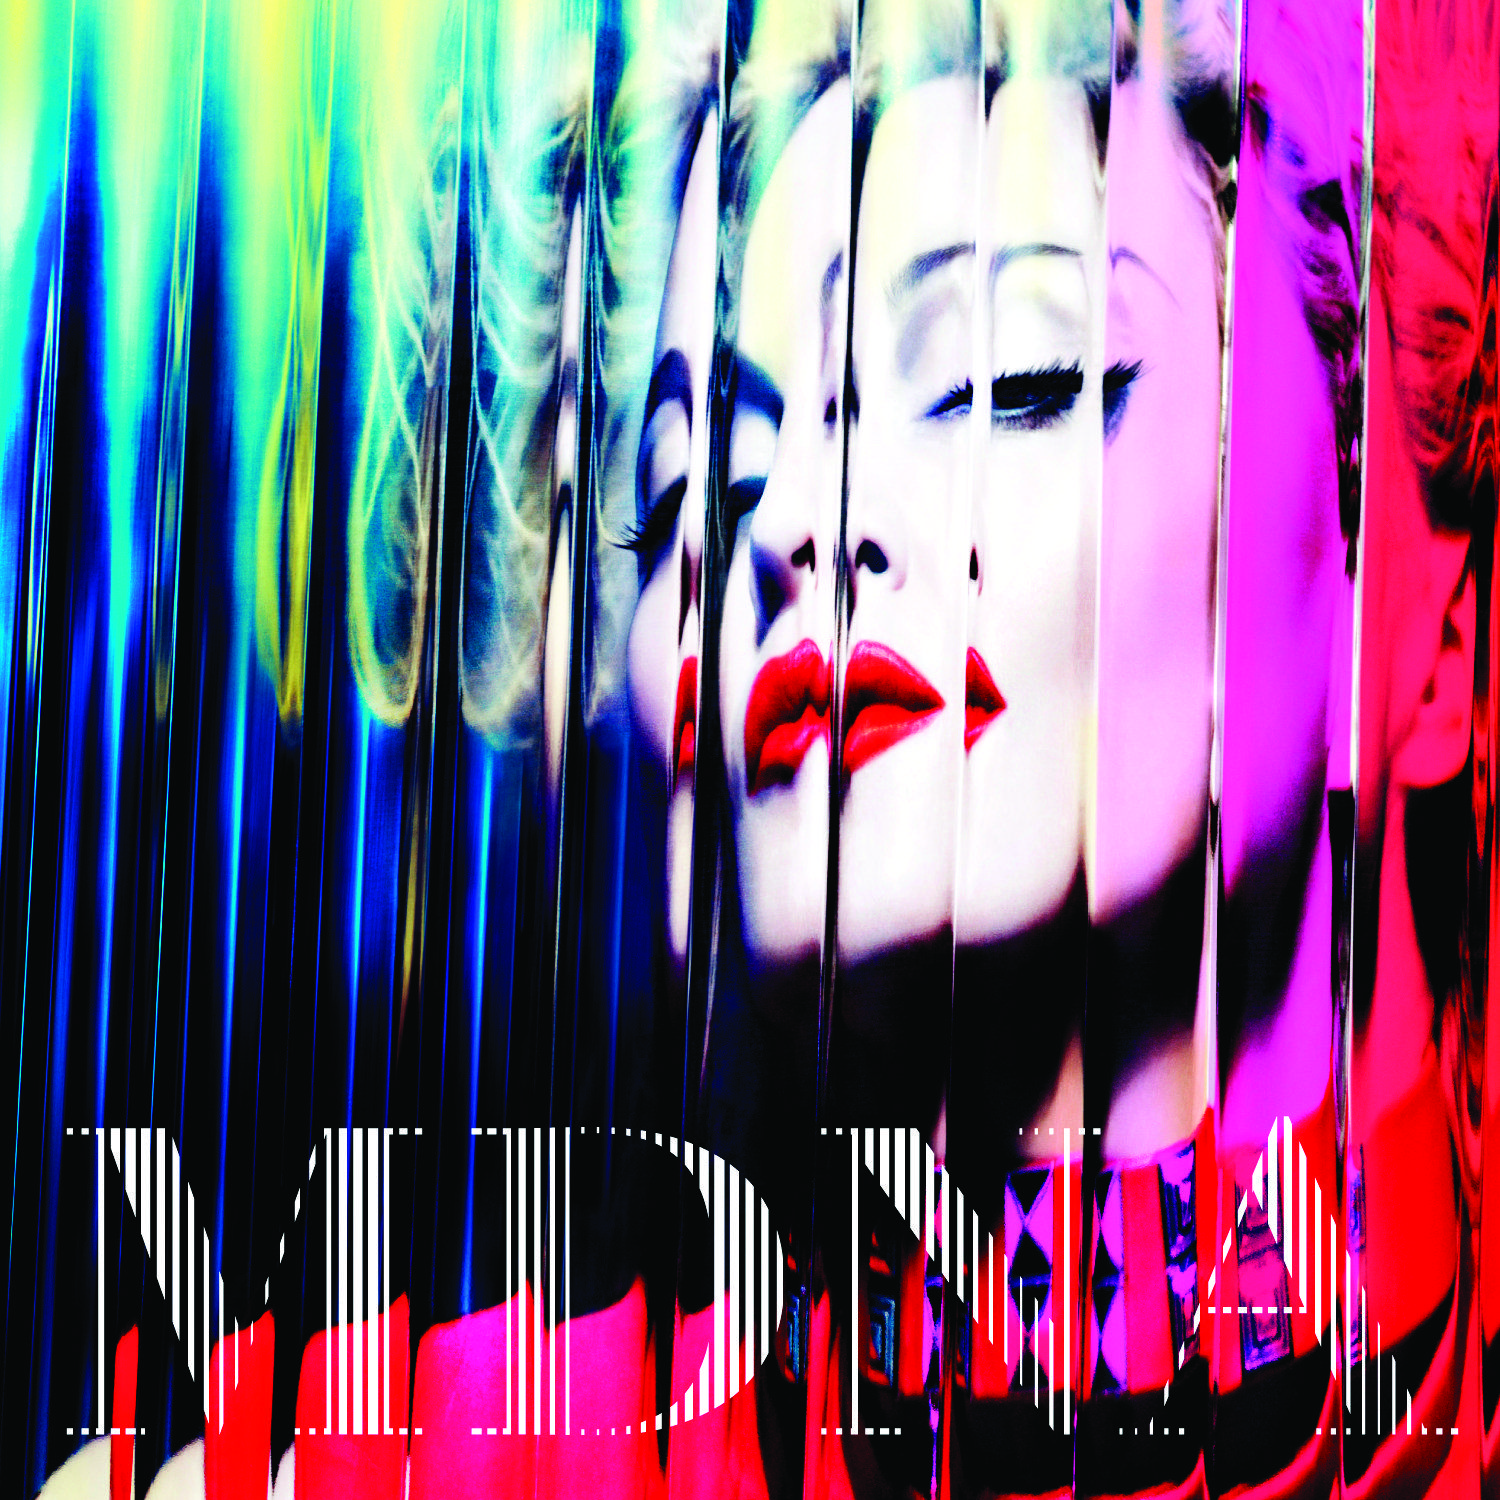 MDNA - out on March 26 2012